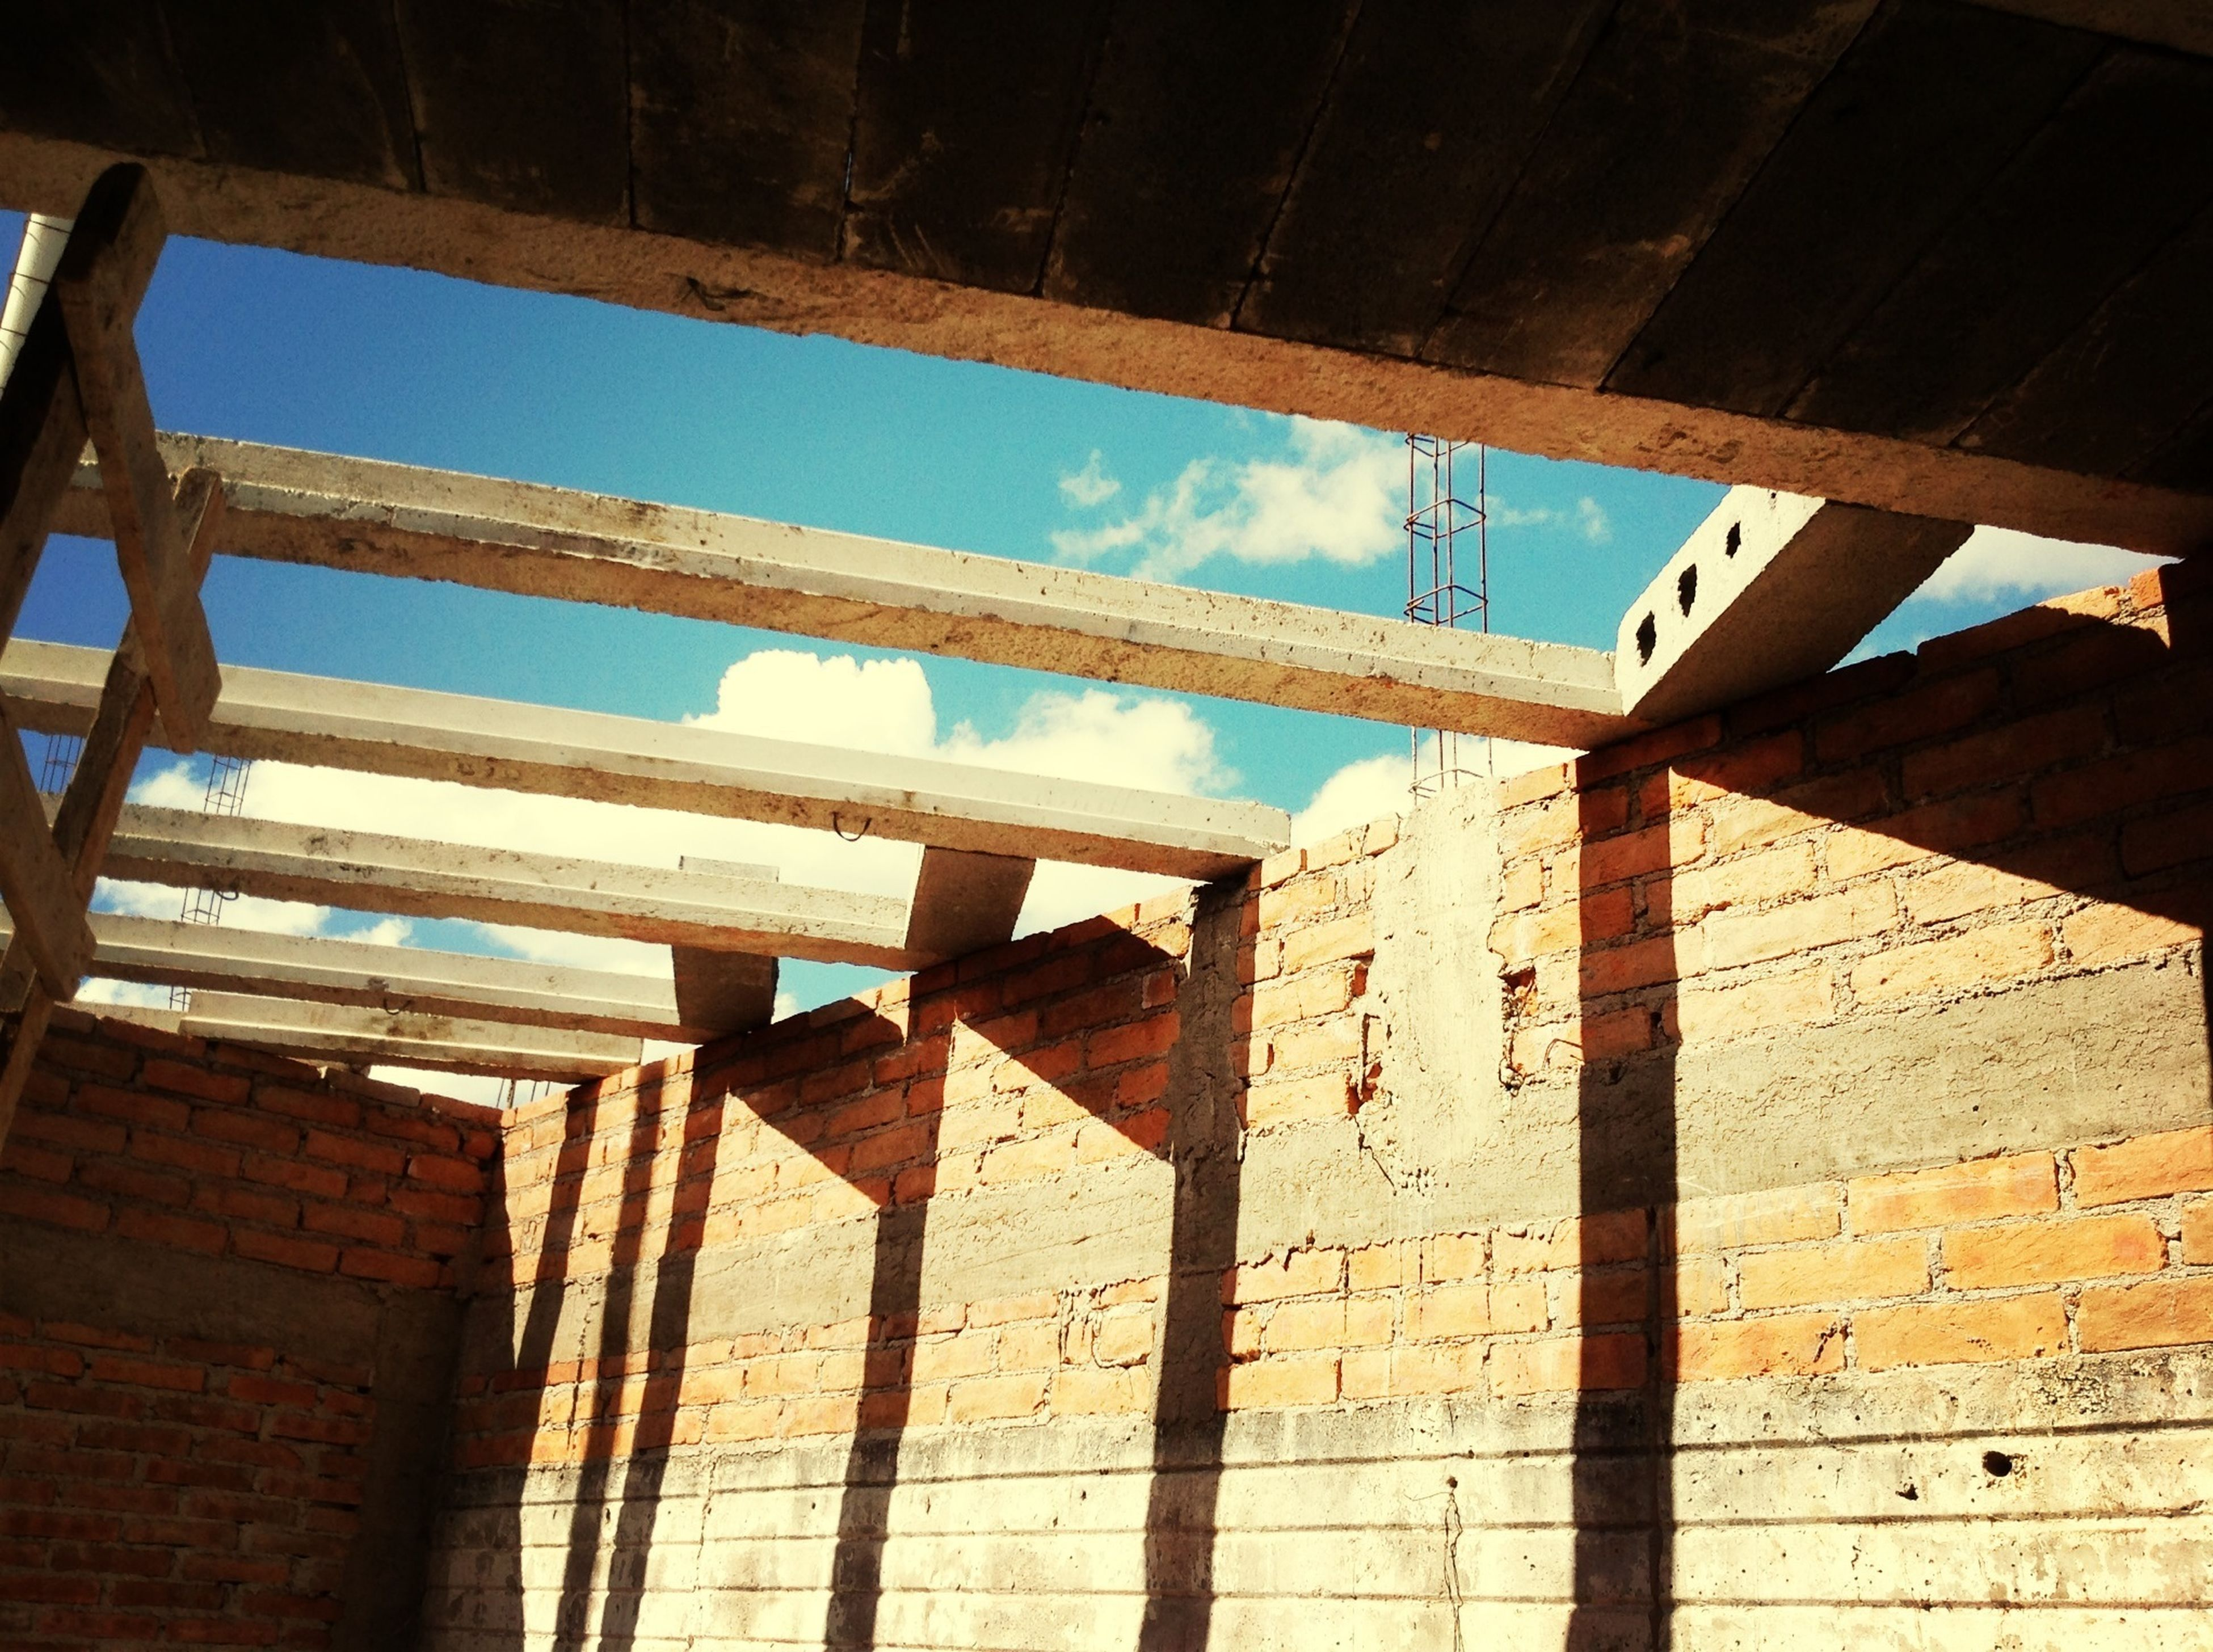 built structure, architecture, low angle view, building exterior, sunlight, sky, shadow, day, indoors, no people, wood - material, wall - building feature, railing, damaged, abandoned, old, building, metal, window